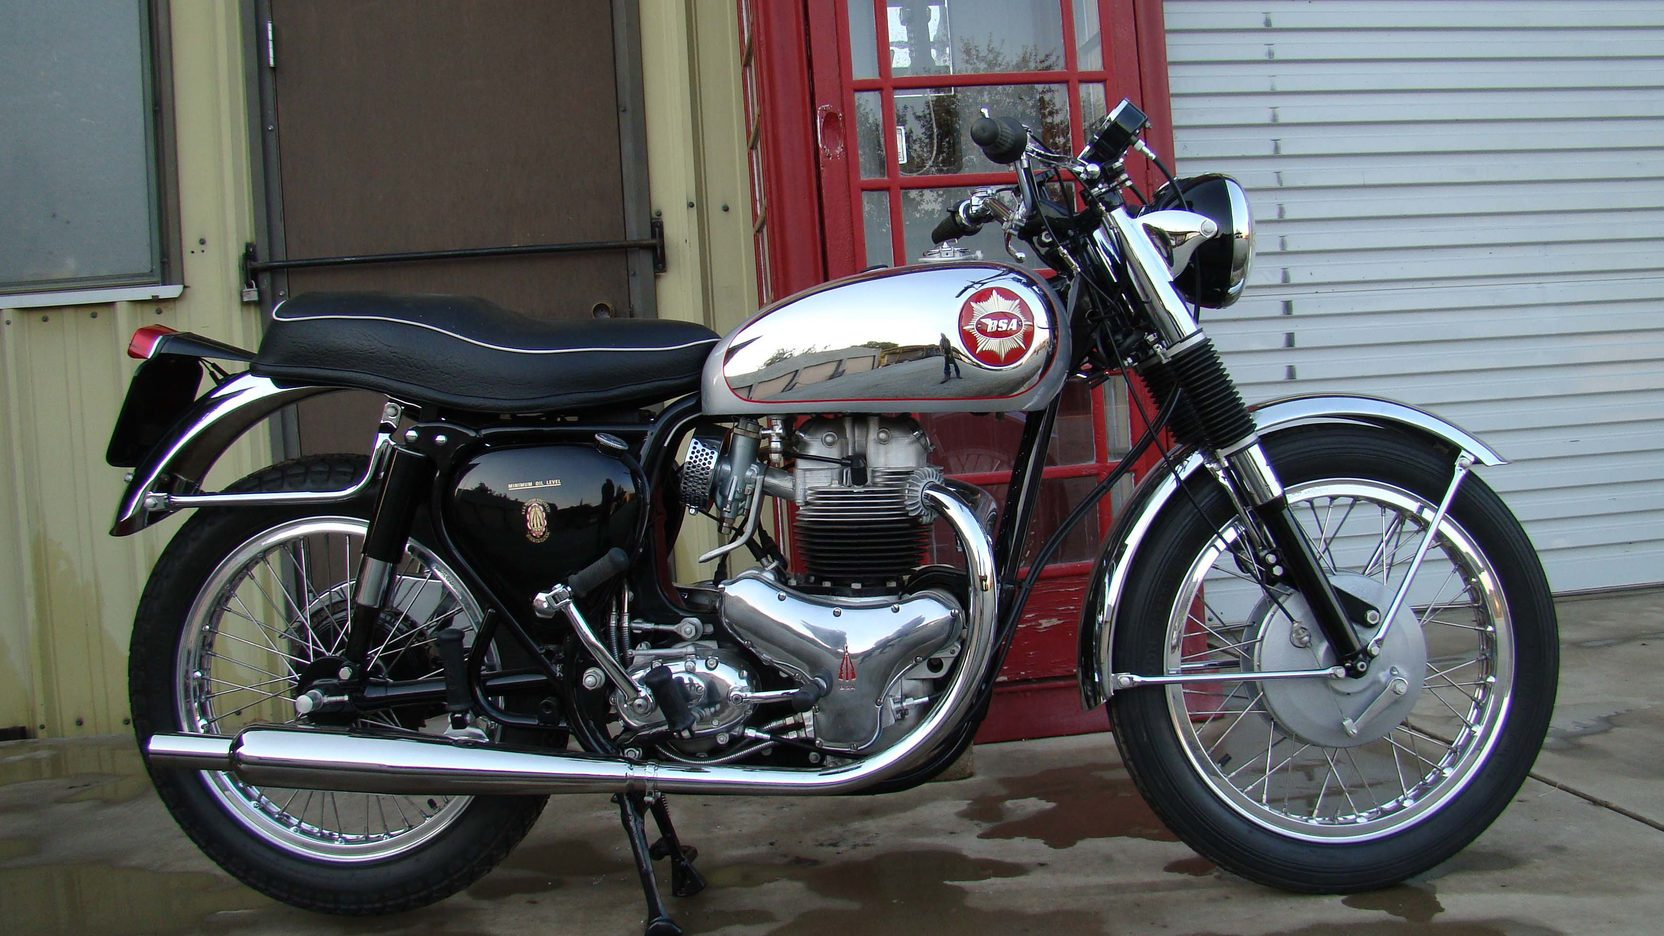 1963 BSA Rocket Gold Star Side View